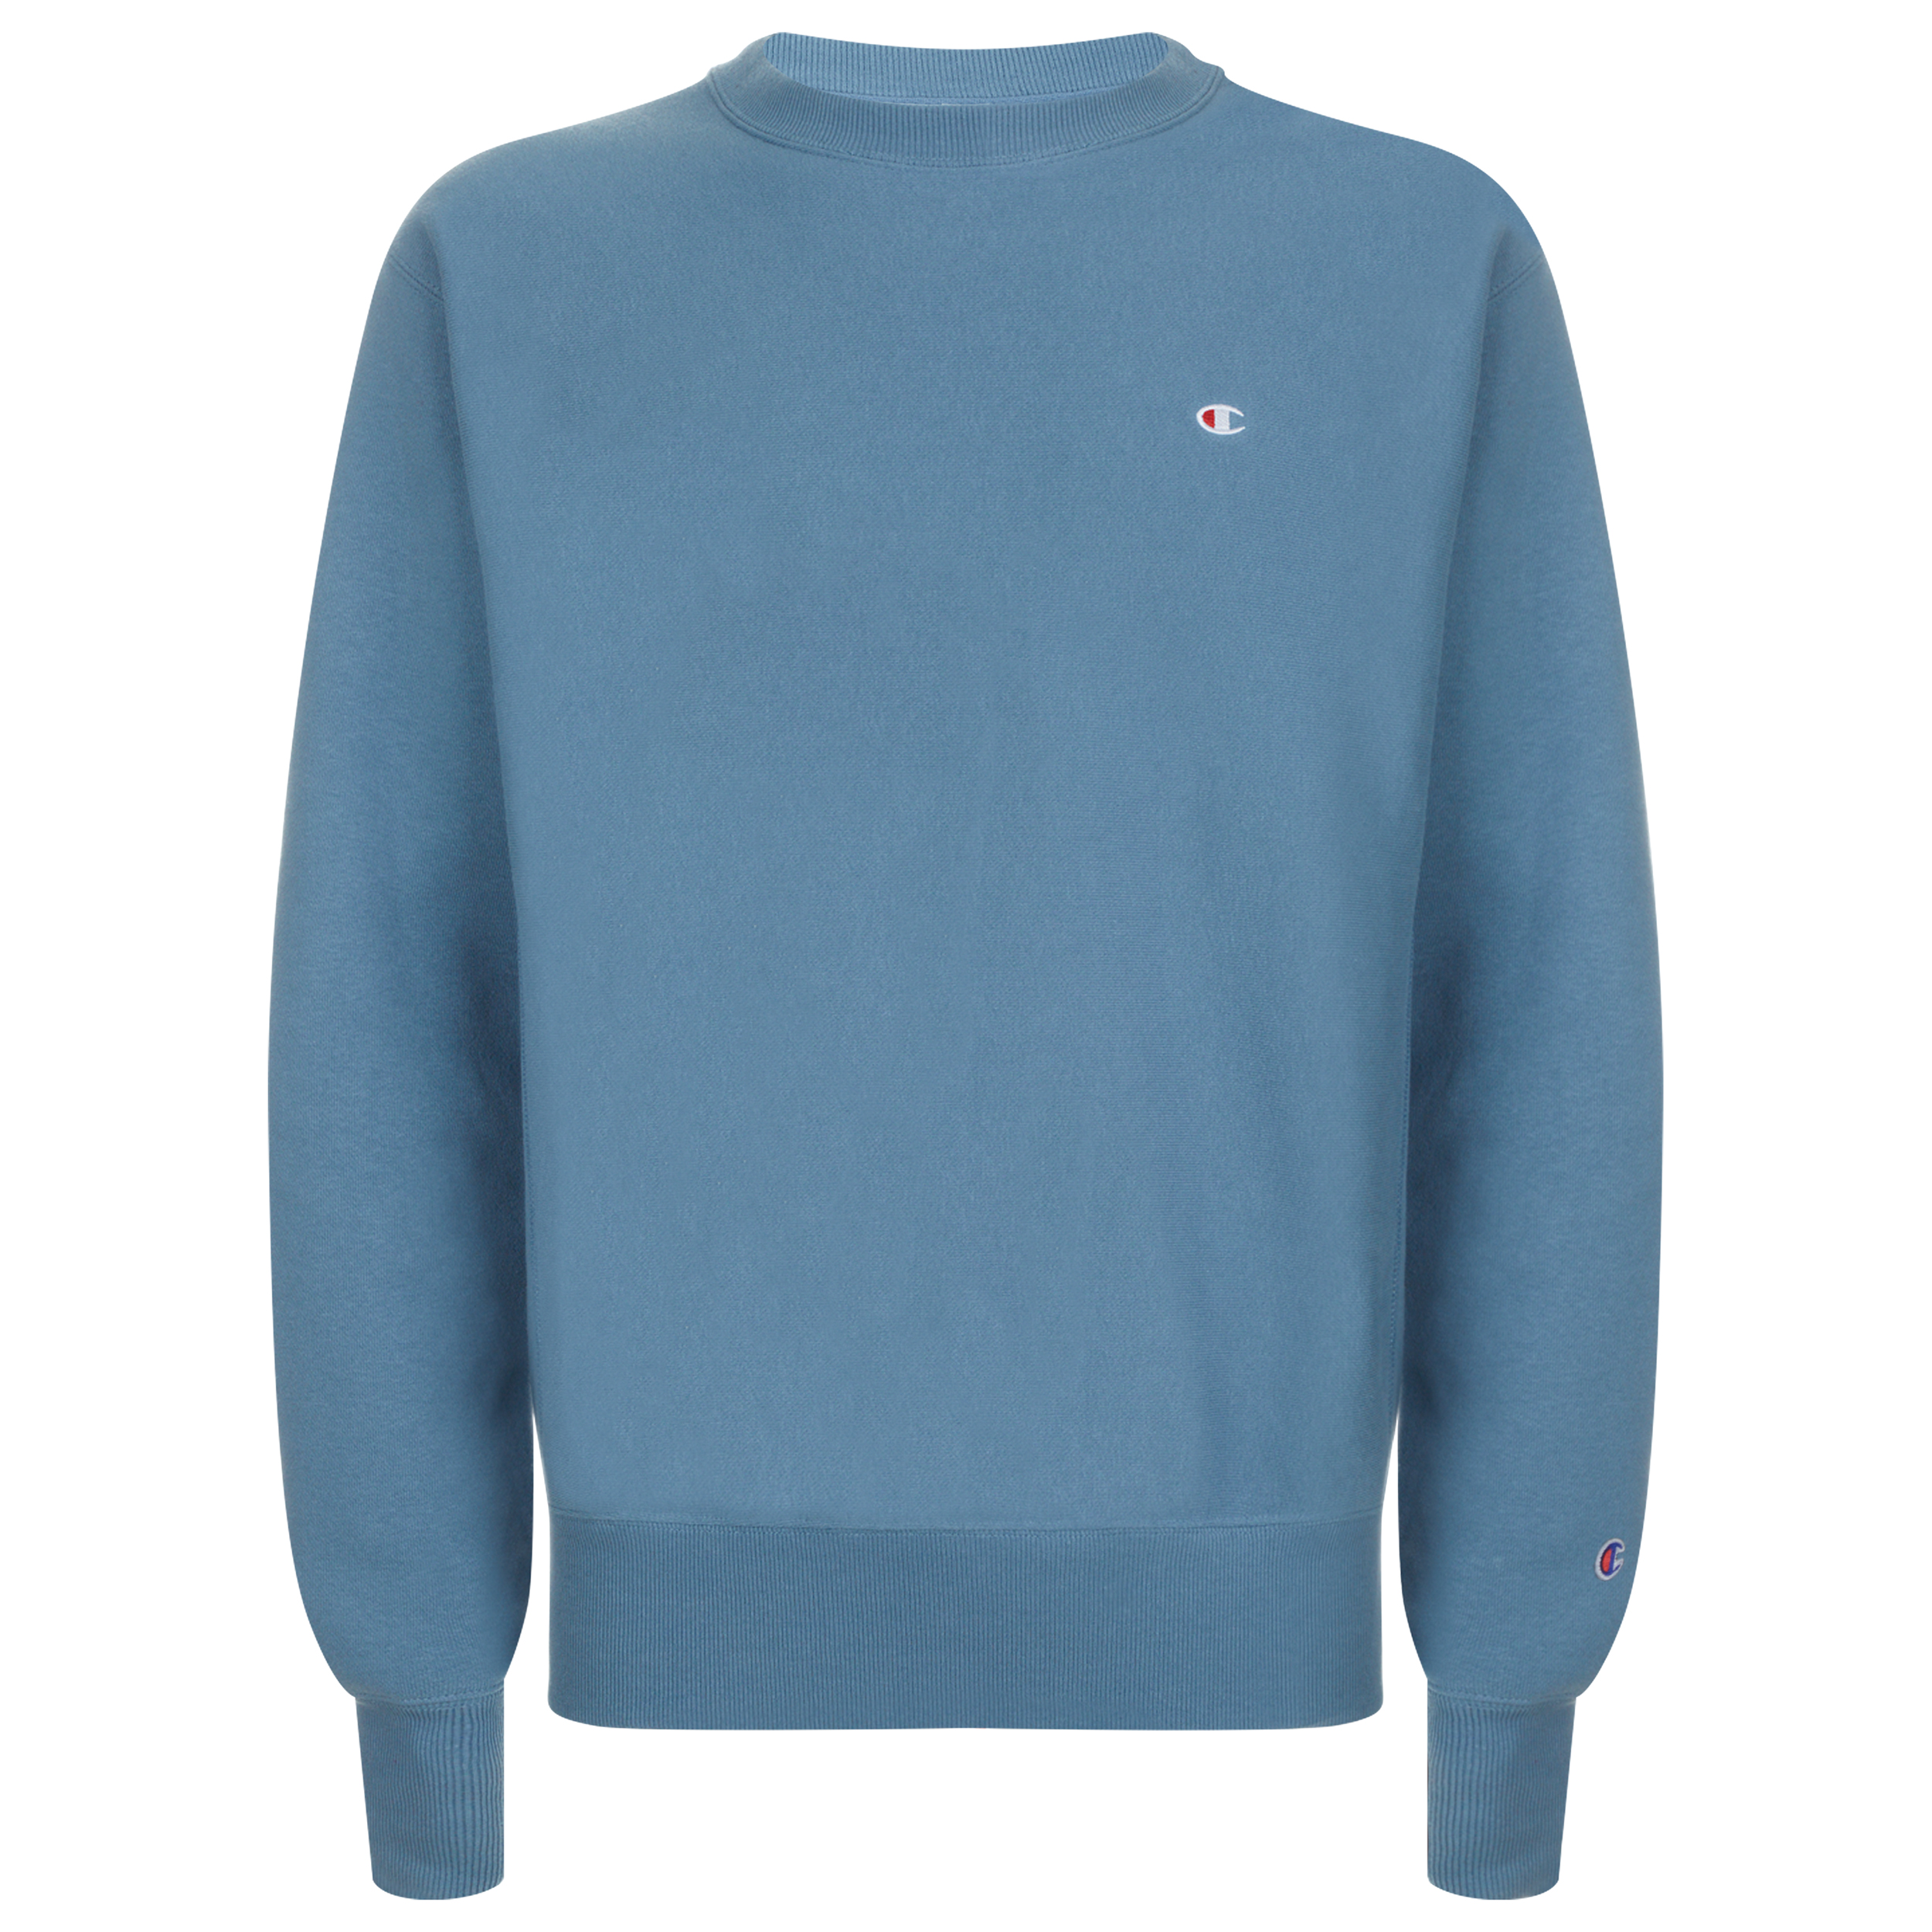 UO exclusive Champion sweater £55 or €70 (2).jpg